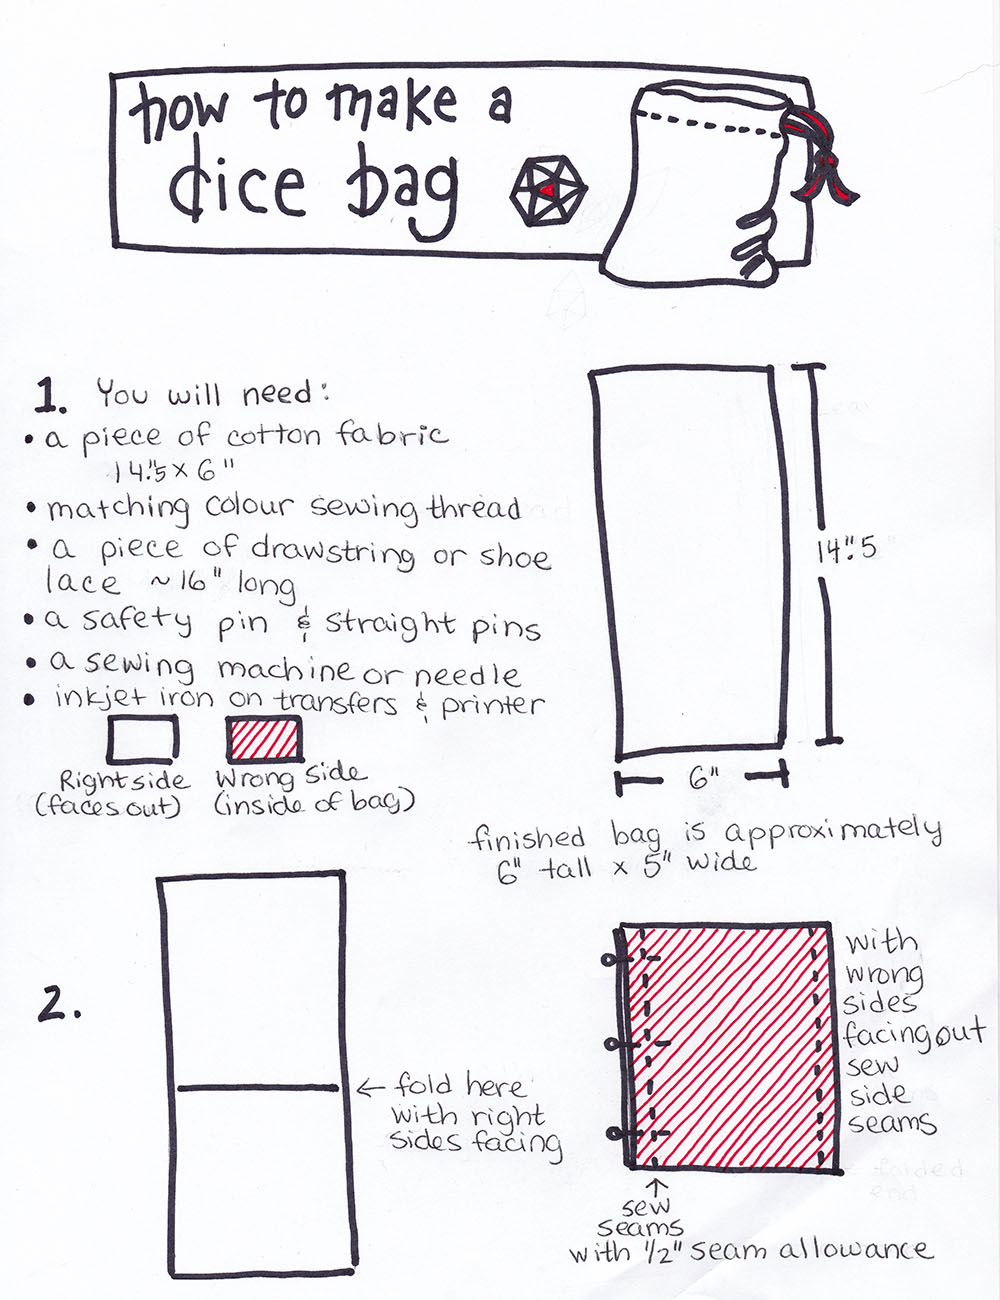 graphic relating to Dice Bag Printable Pattern called knit fish: Sew Geeky - how towards create a cube bag